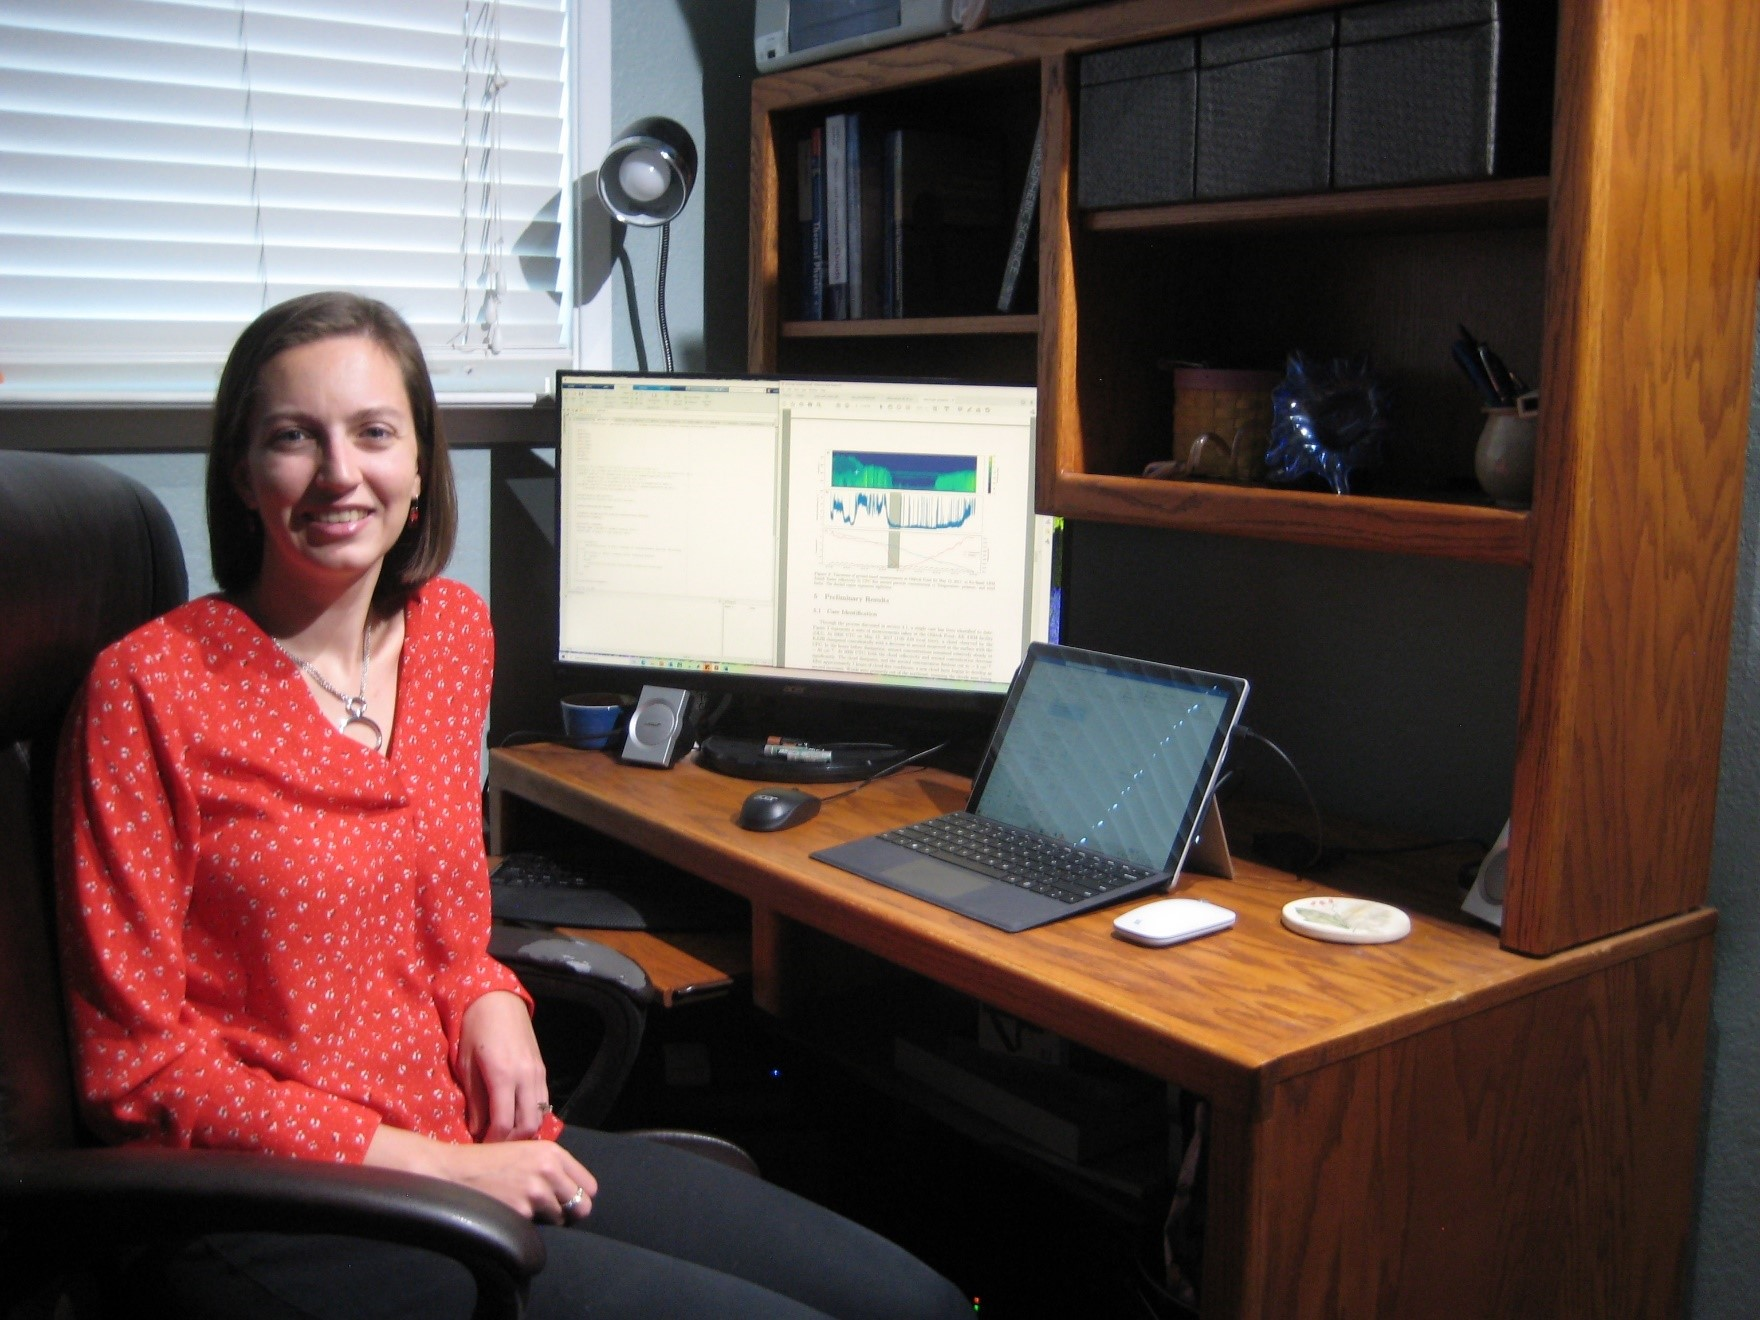 University of California, Davis, atmospheric scientist Adele Igel, busy on an ASR project on clouds in the Arctic, pauses in her Davis, California, home office.